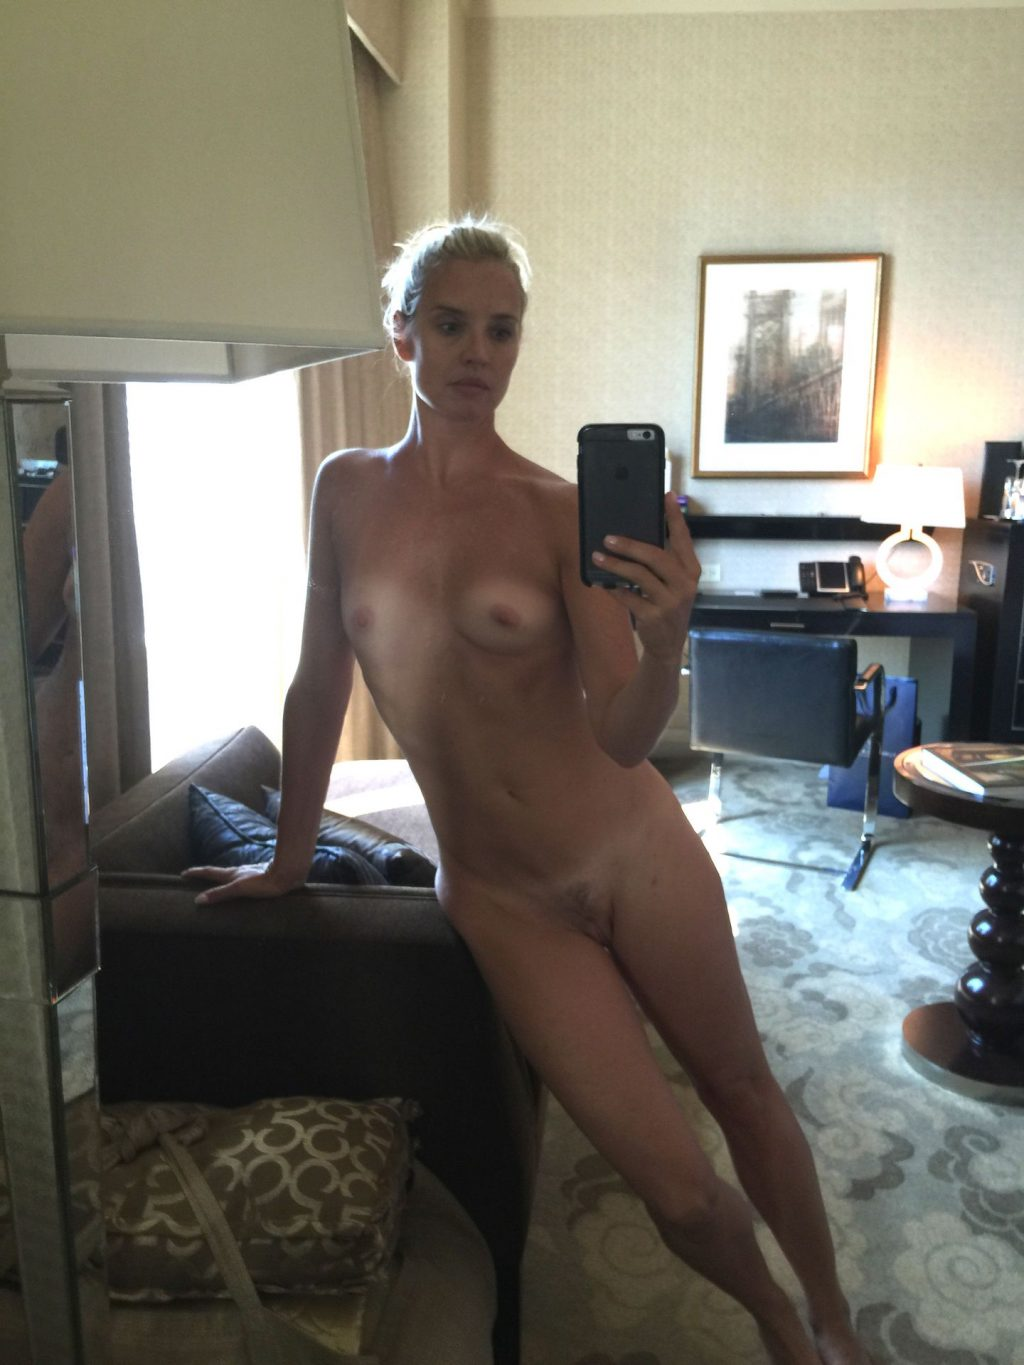 Laurie Dhue Nude Leaked The Fappening (2 Photos)